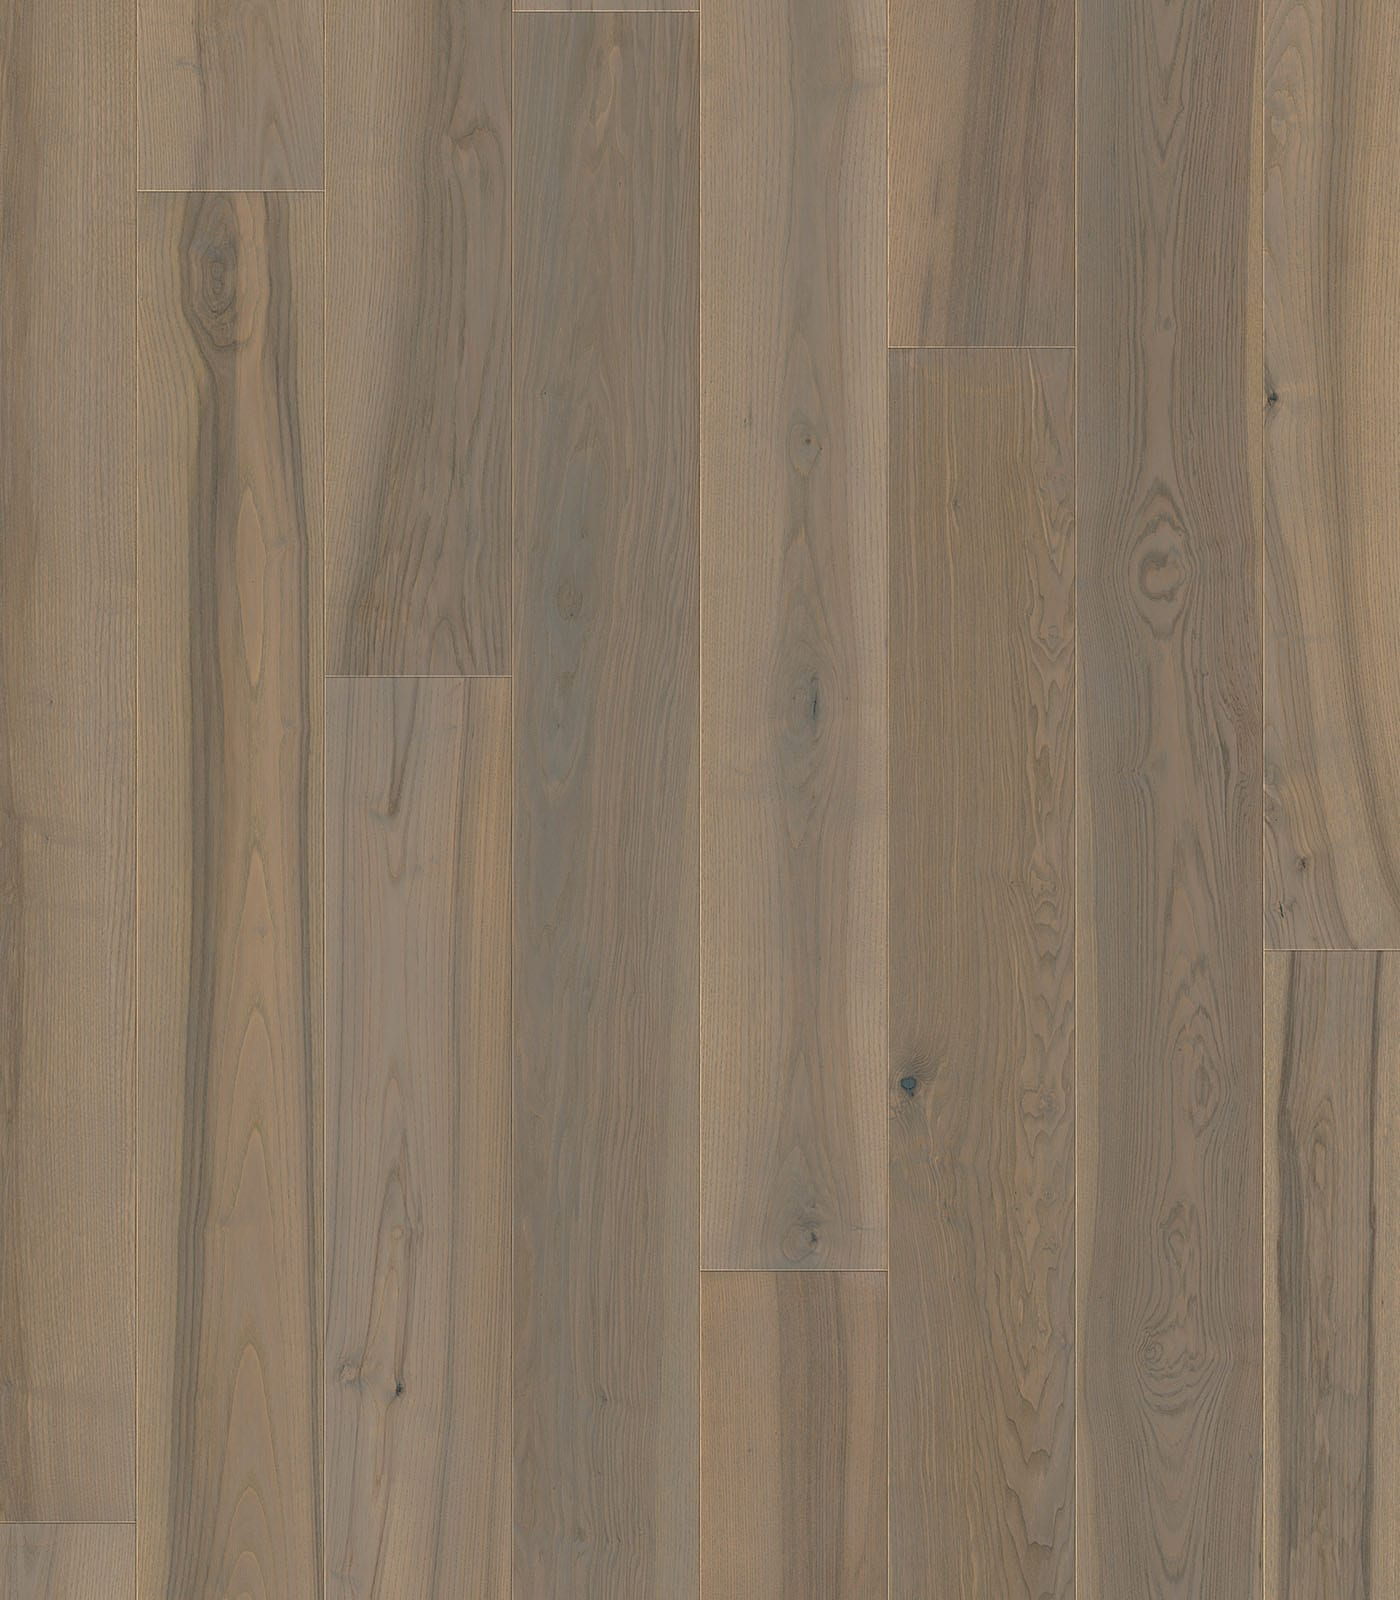 Barcelona - European Ash Floors - After Oak Collection - Flat